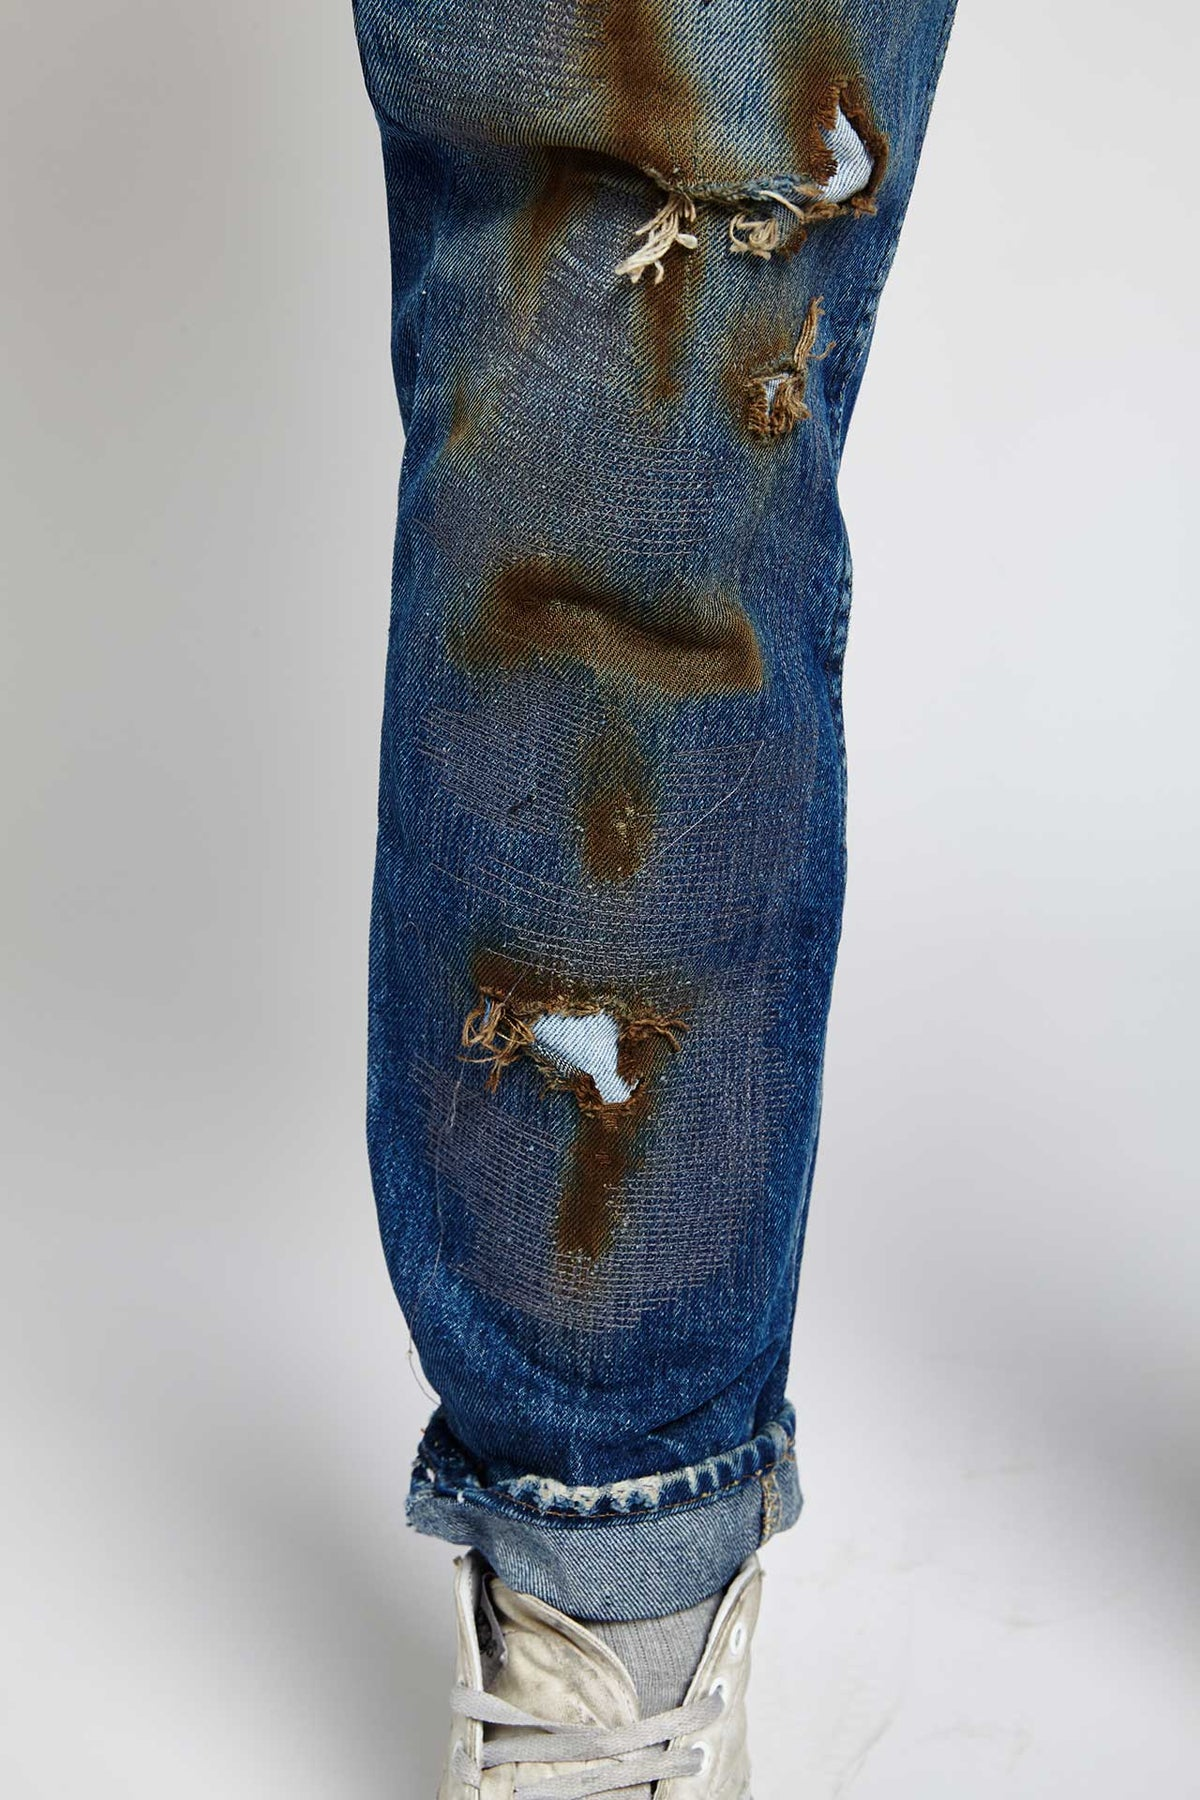 MILLIE RIGHE DISTRESSED COTTON BLUE 36 W JEANS-BOTTOMS-Mundane Official-36-BLUE-Mundane Official